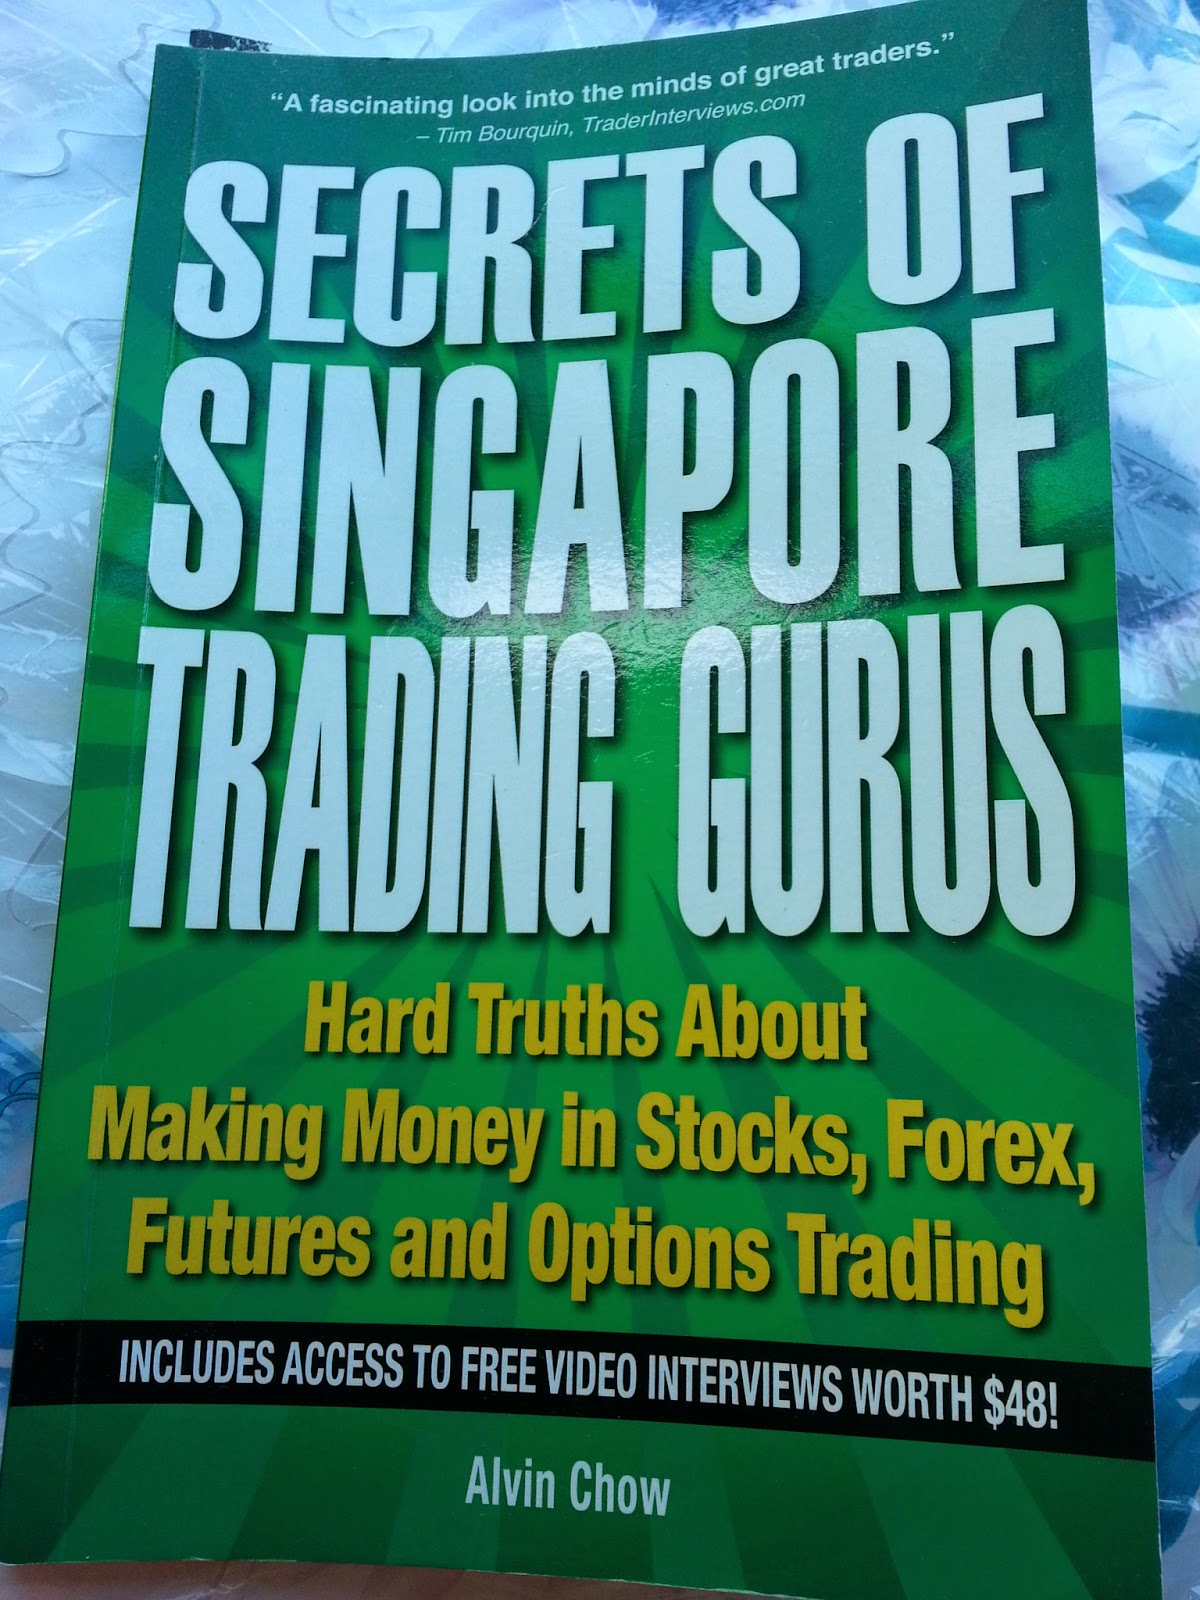 A good trading strategy secrets